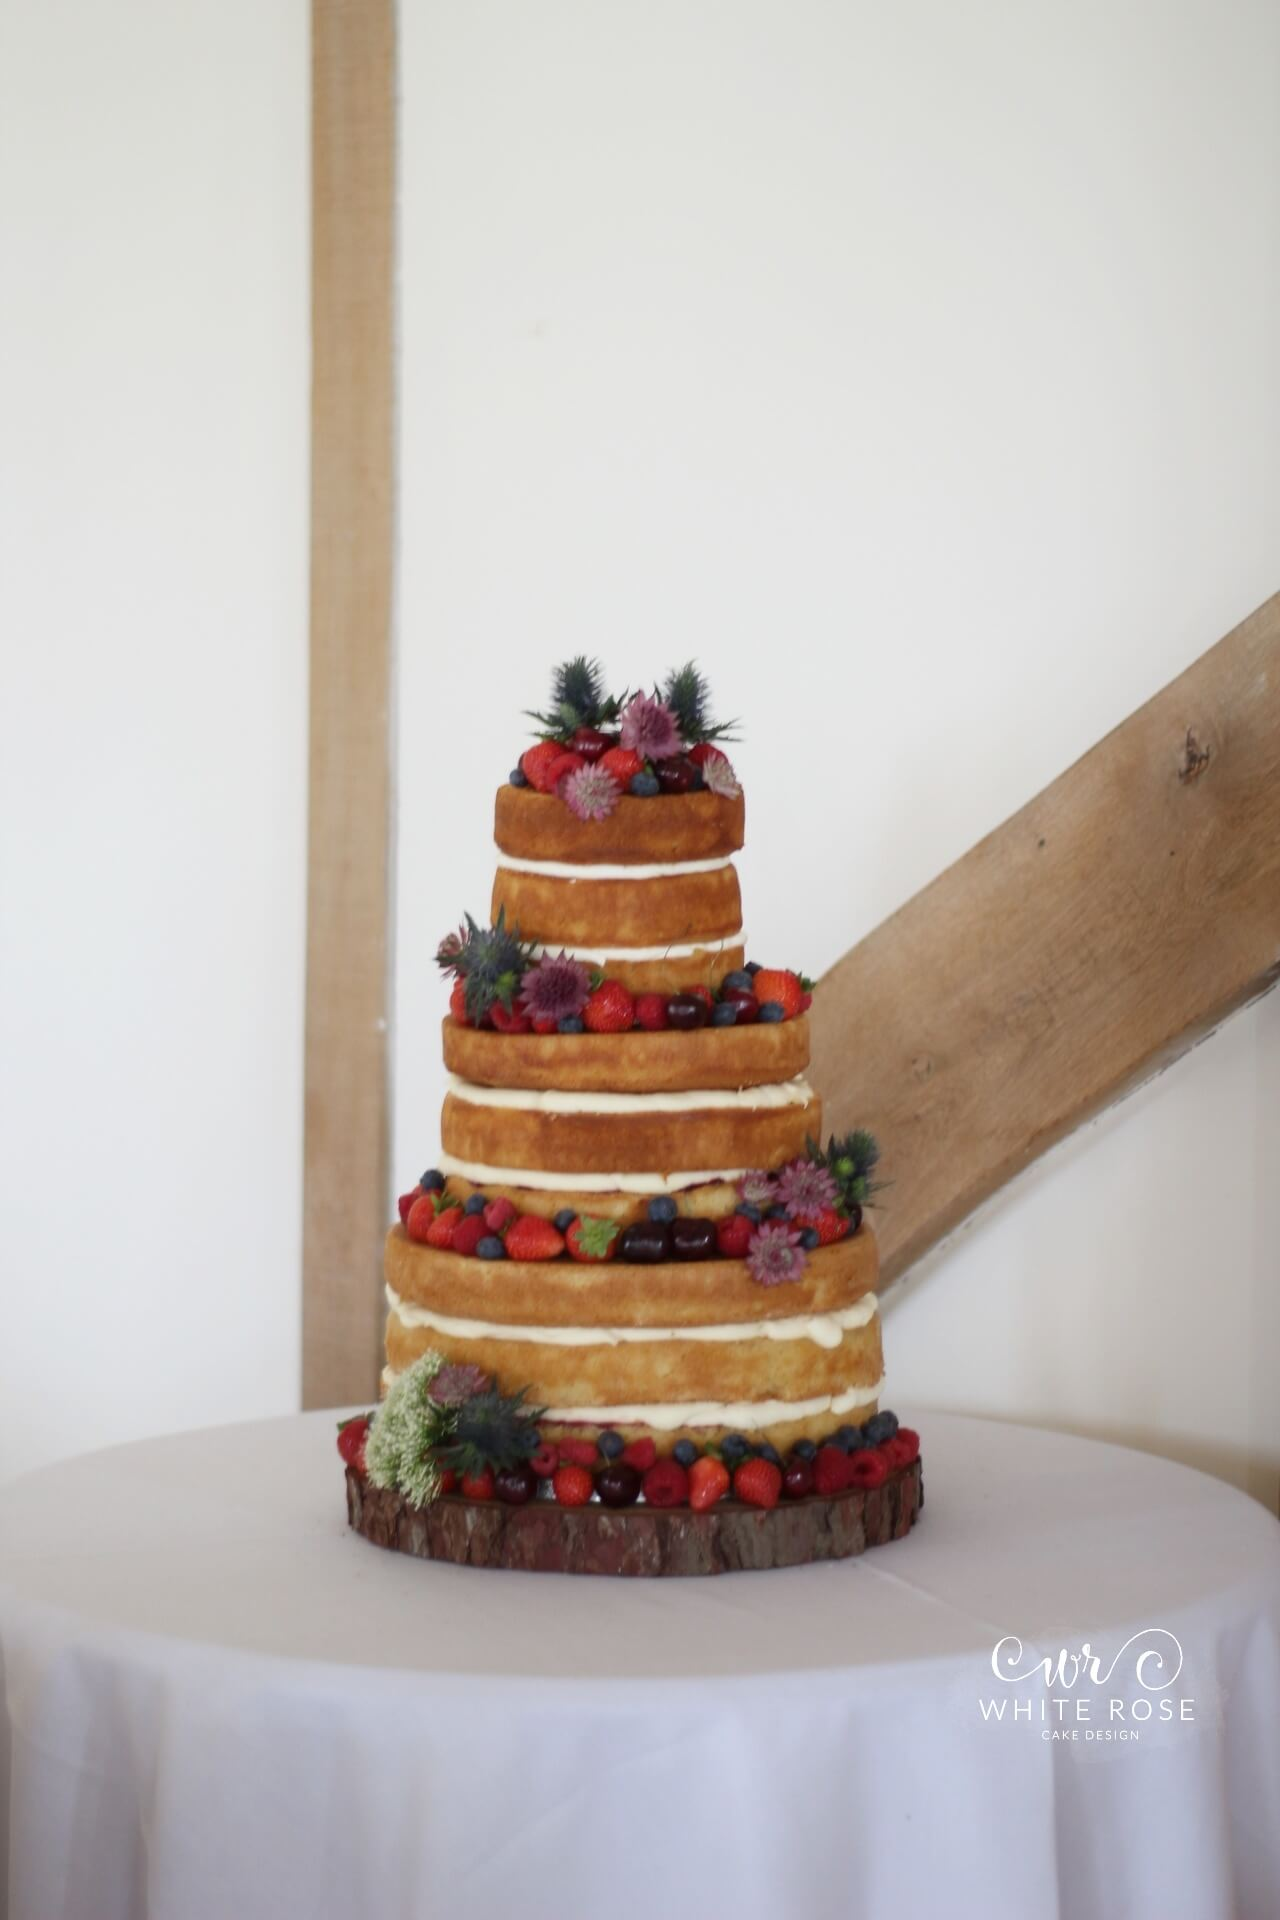 Whimsical Naked Wedding Cake with Fresh Berries and Flowers at Sandburn Hall by White Rose Cake Design Bespoke Cake Makers in West Yorkshire (1)